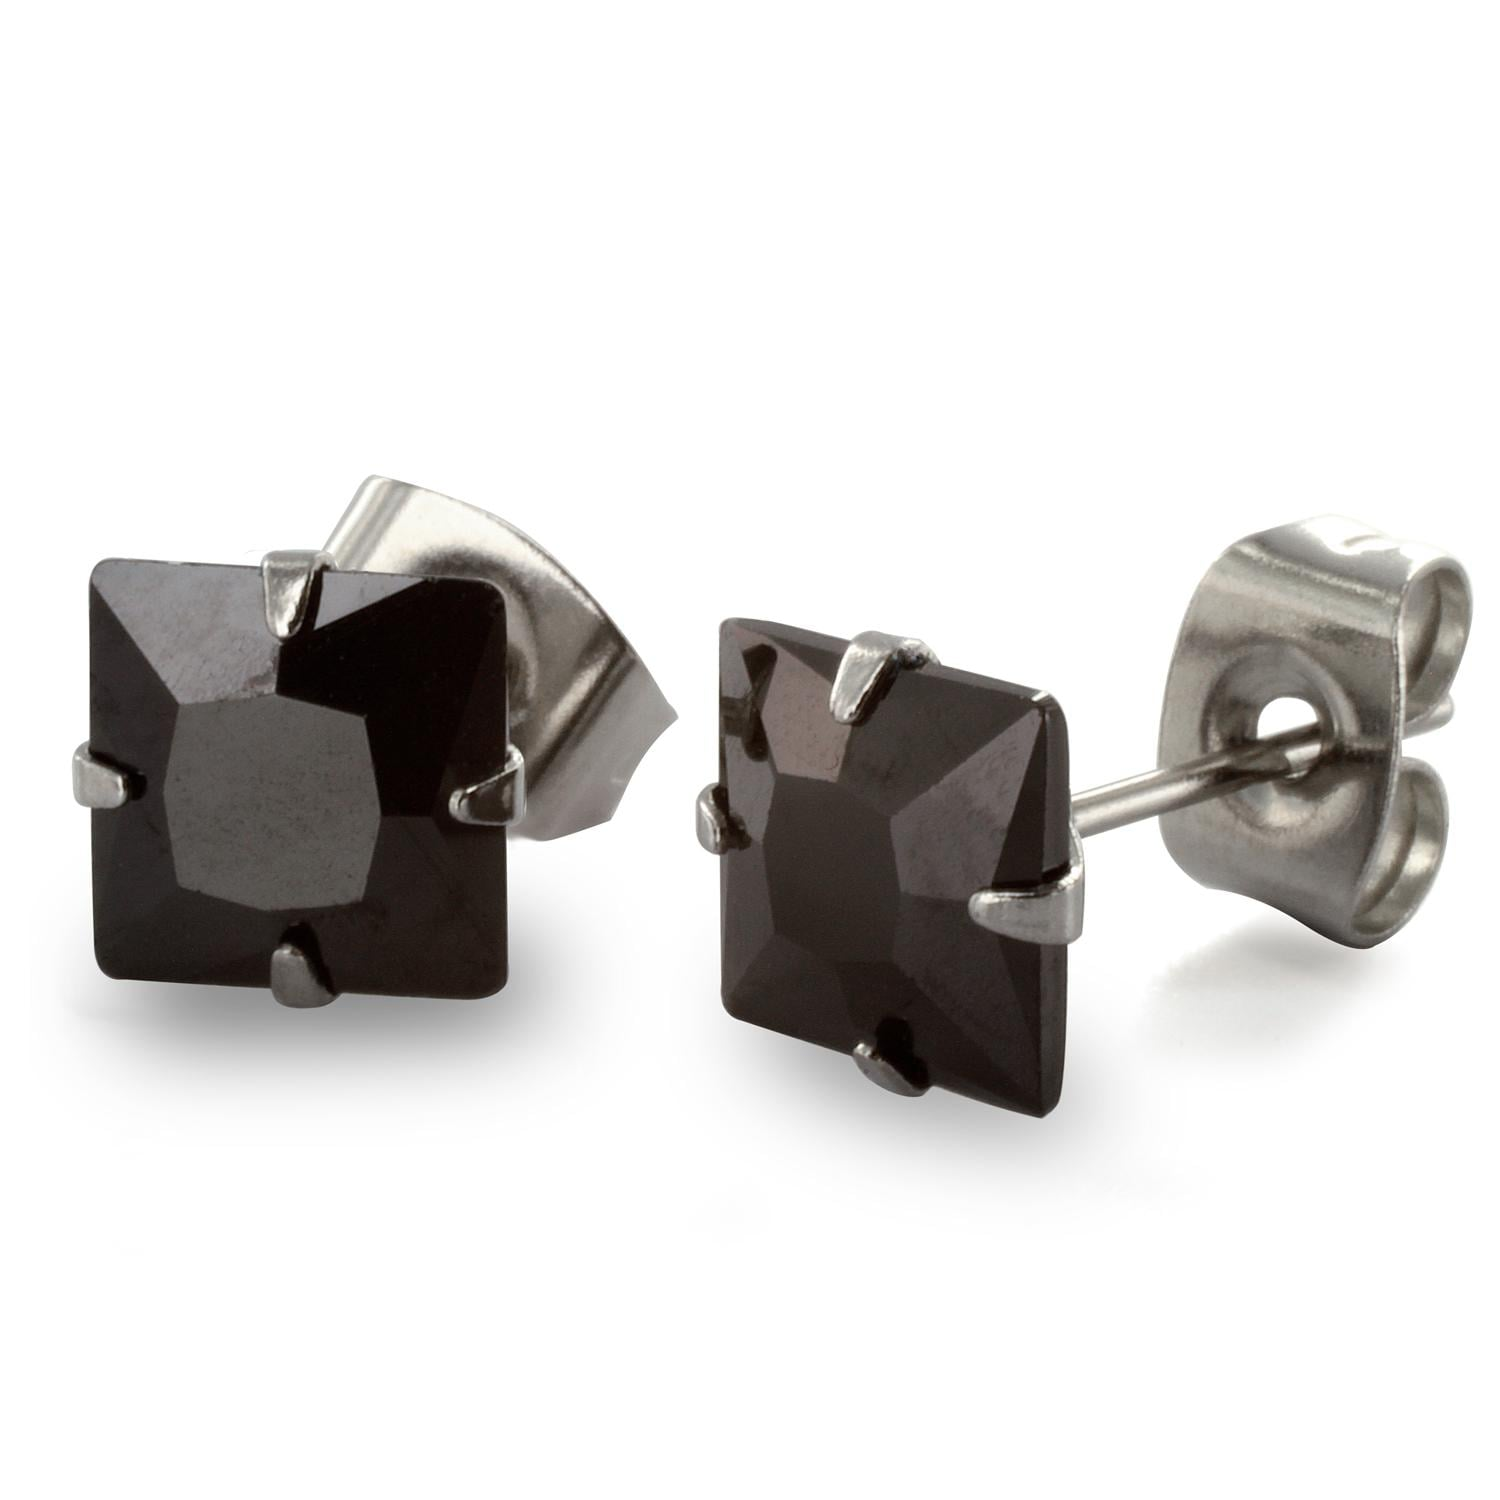 Stainless Steel Stud Earrings with Princess Cut Square Black CZ - 7 mm